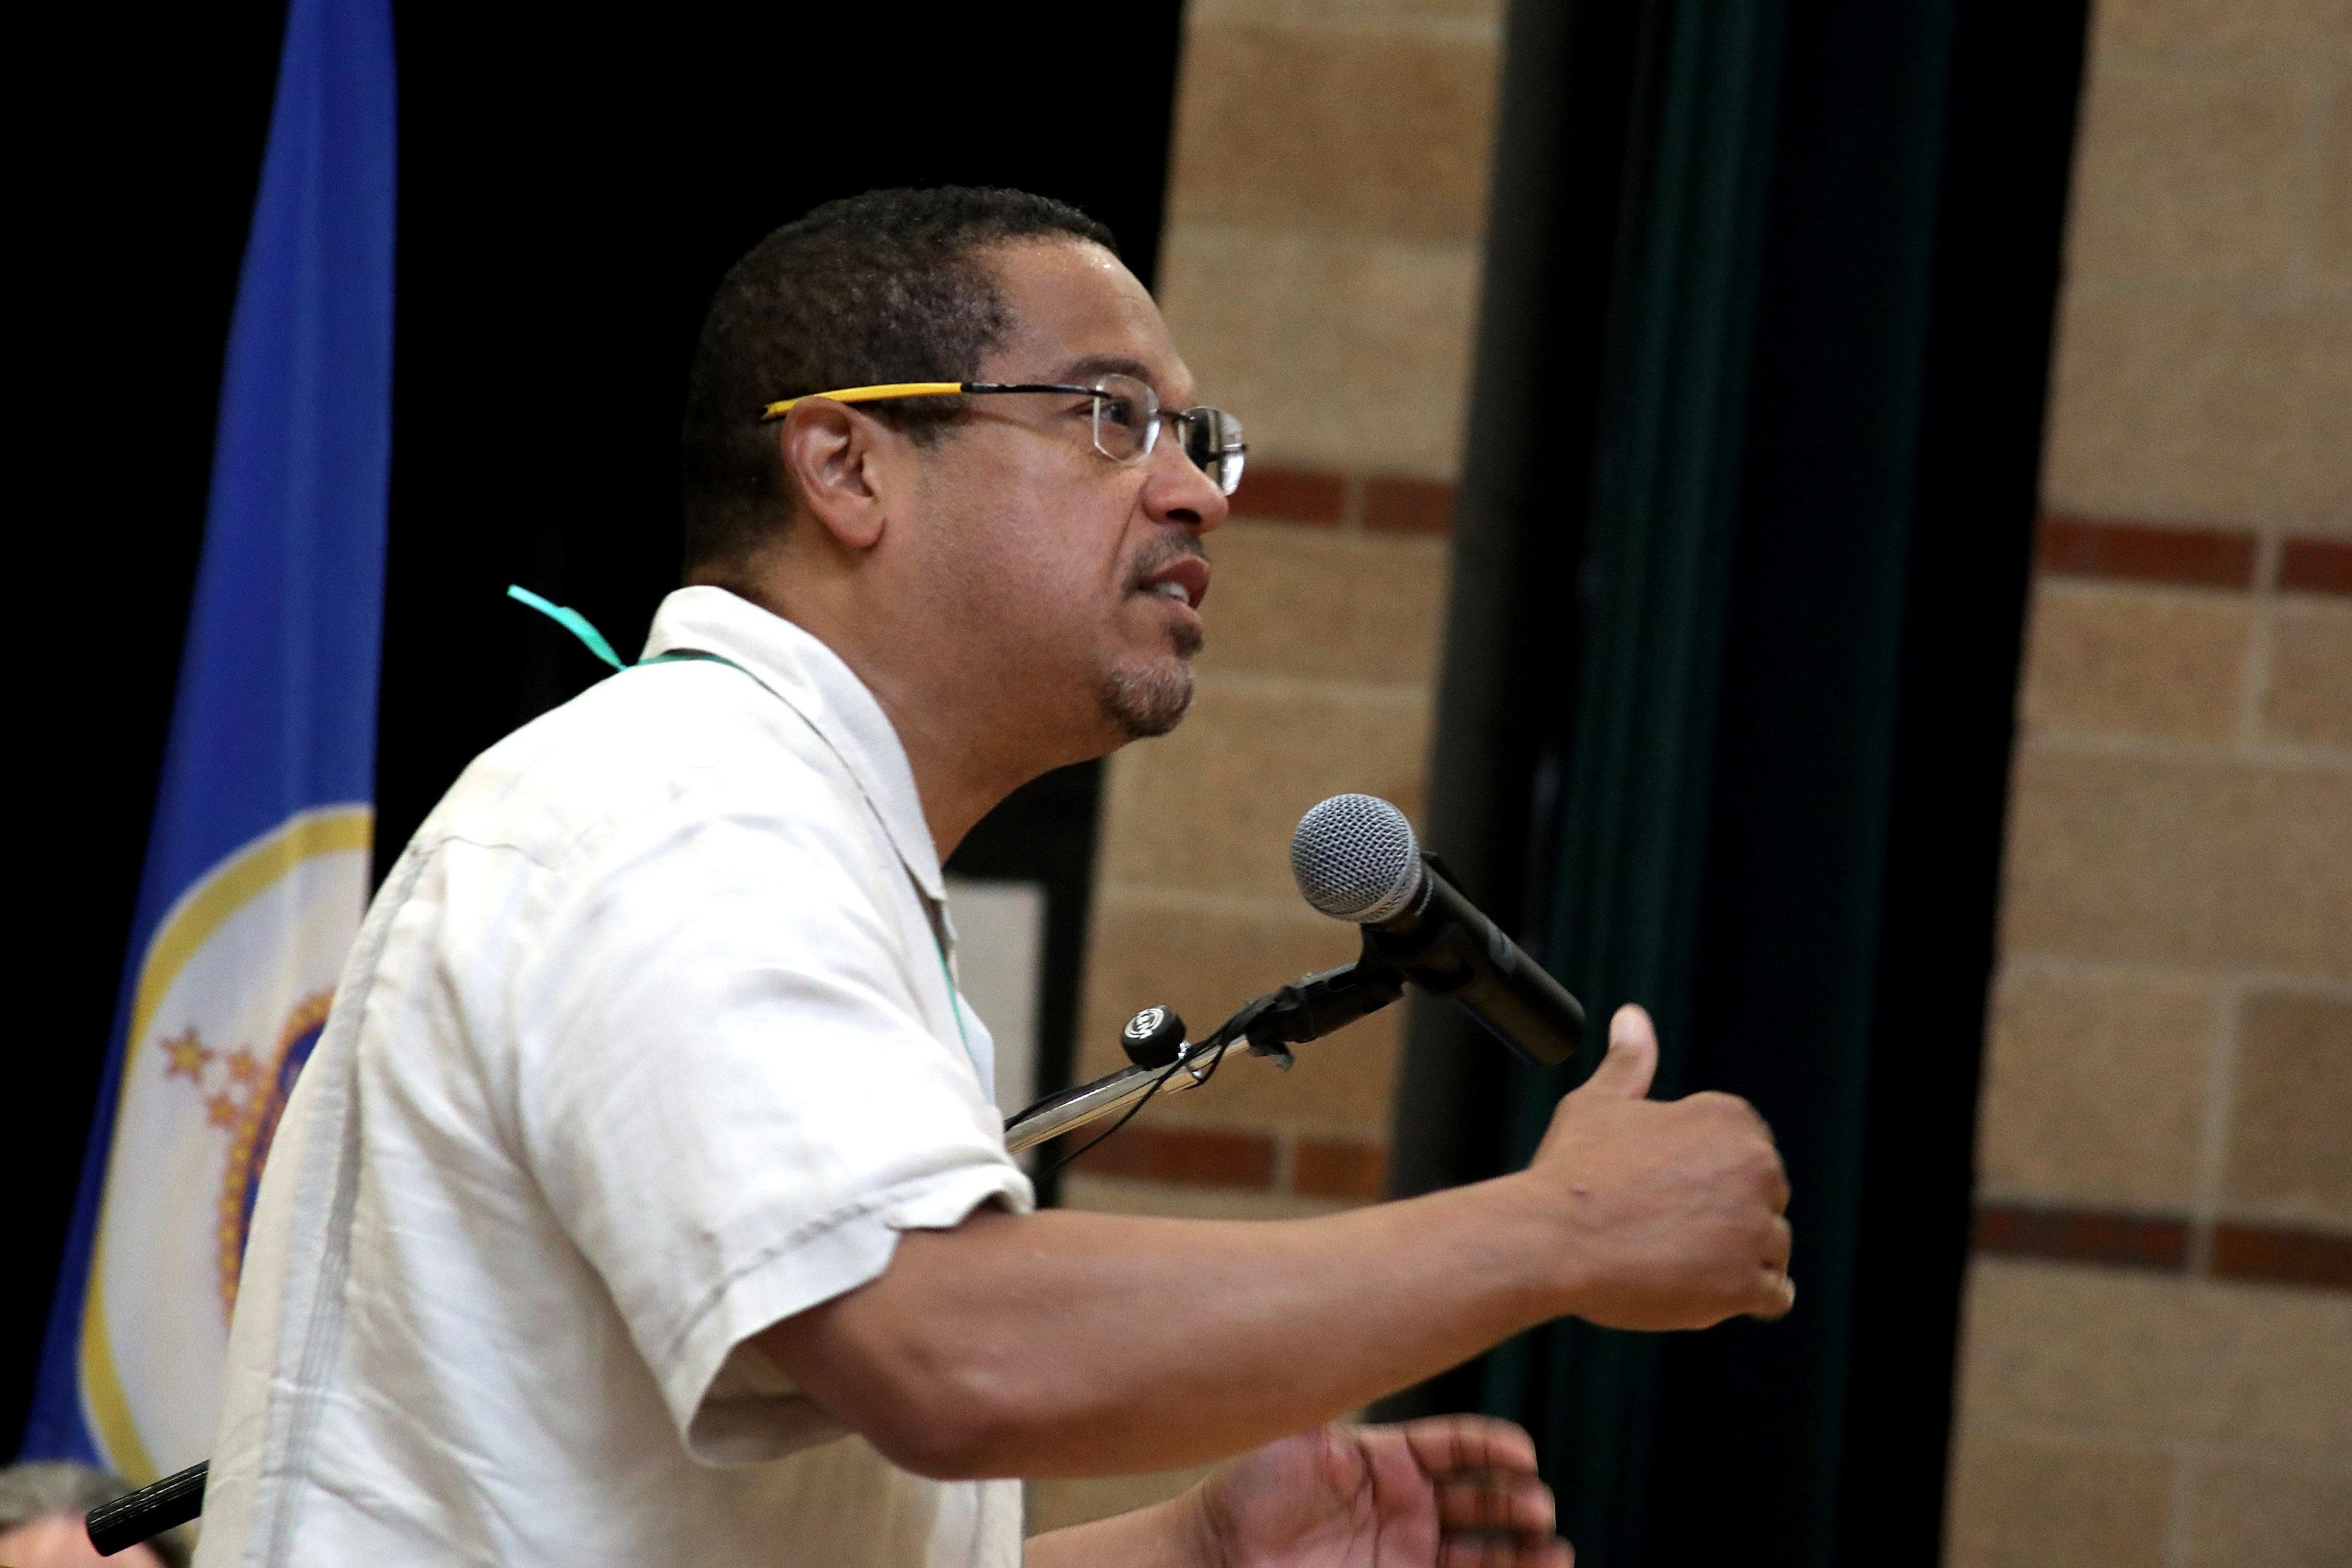 Rep. Keith Ellison speaks at the Democratic-Farmer-Labor Party endorsement convention in Minneapolis on June 17, 2018.